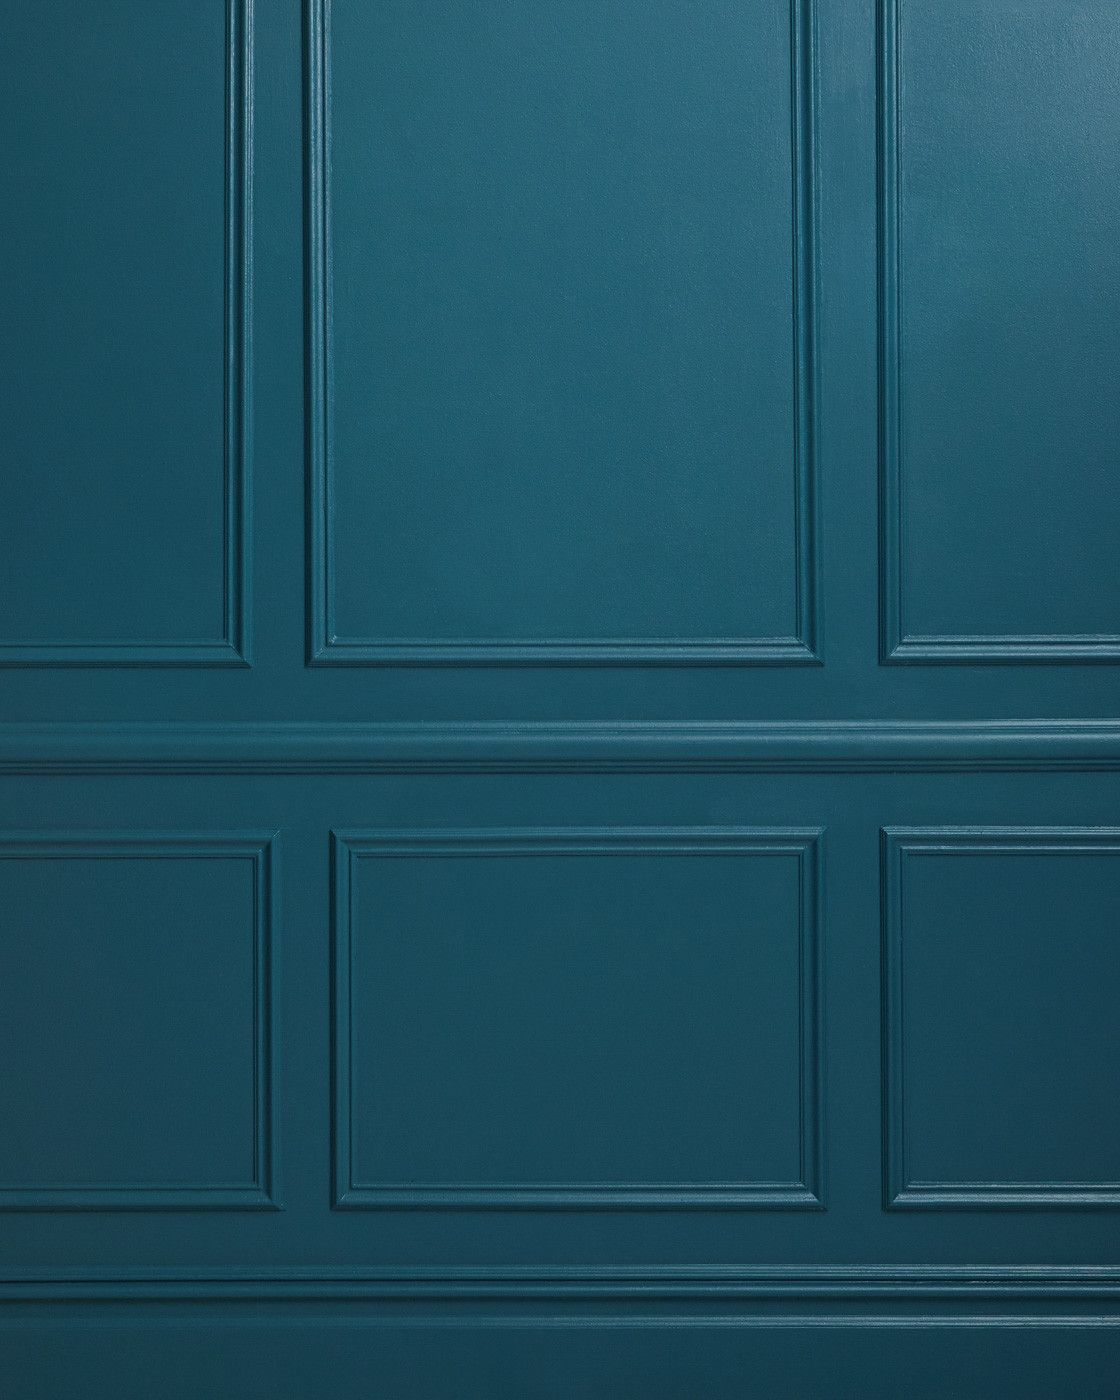 Sublime Dark Teal Semi Gloss Paint Clare In 2020 Royal Blue Paint Colors Teal Paint Colors Blue Paint Colors